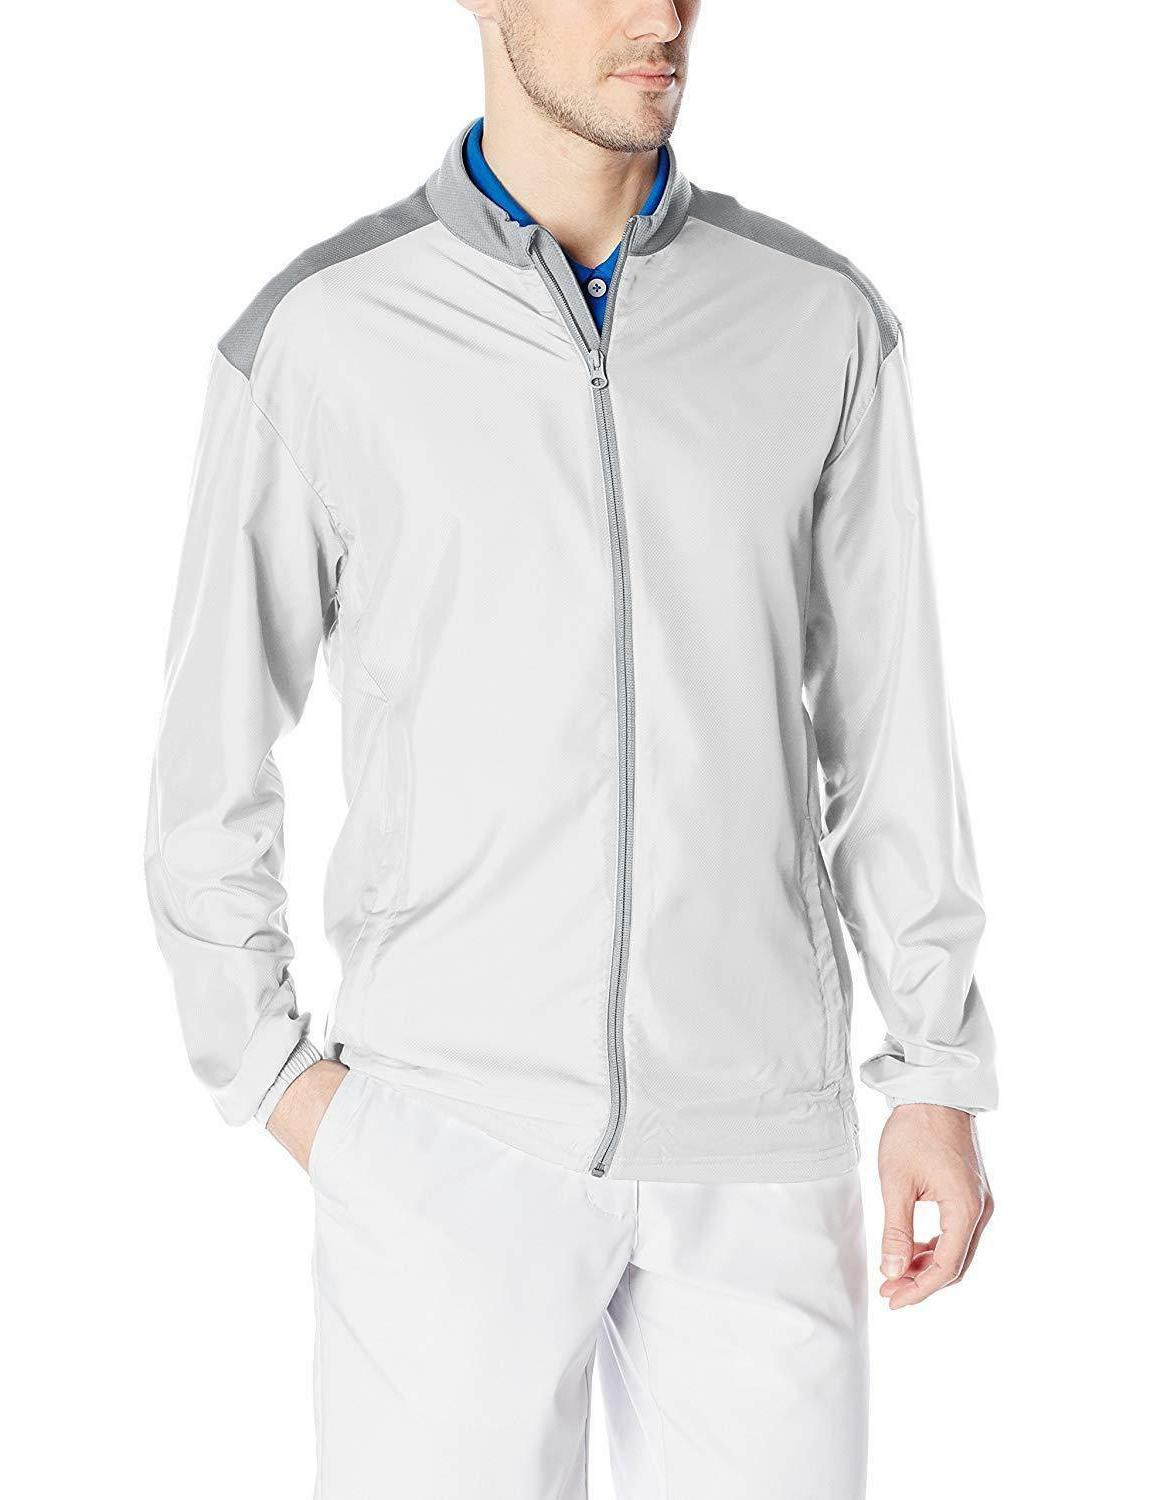 New Wind Grey Long Resistant Golf